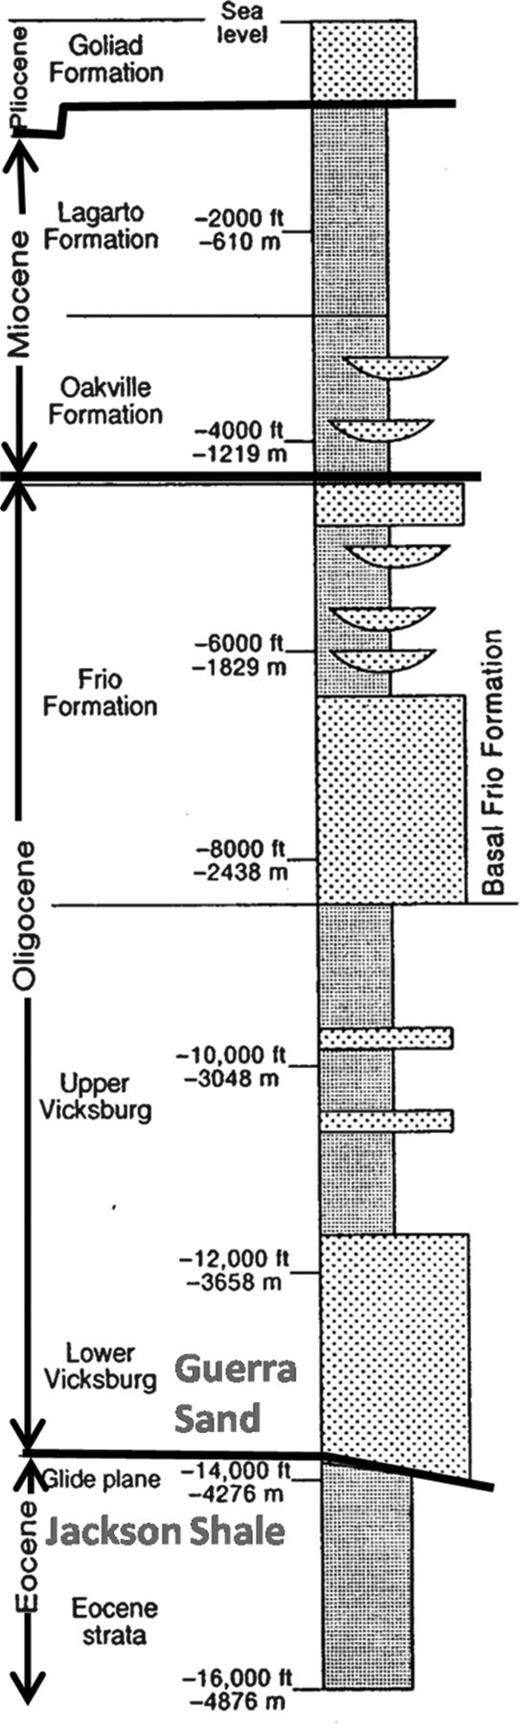 Tertiary stratigraphy in the McAllen Ranch Field area. General depths for McAllen Ranch Field are shown (from Langford et al., 1994). Actual producing depth in the study area is approximately 4250 m (14,000 ft).